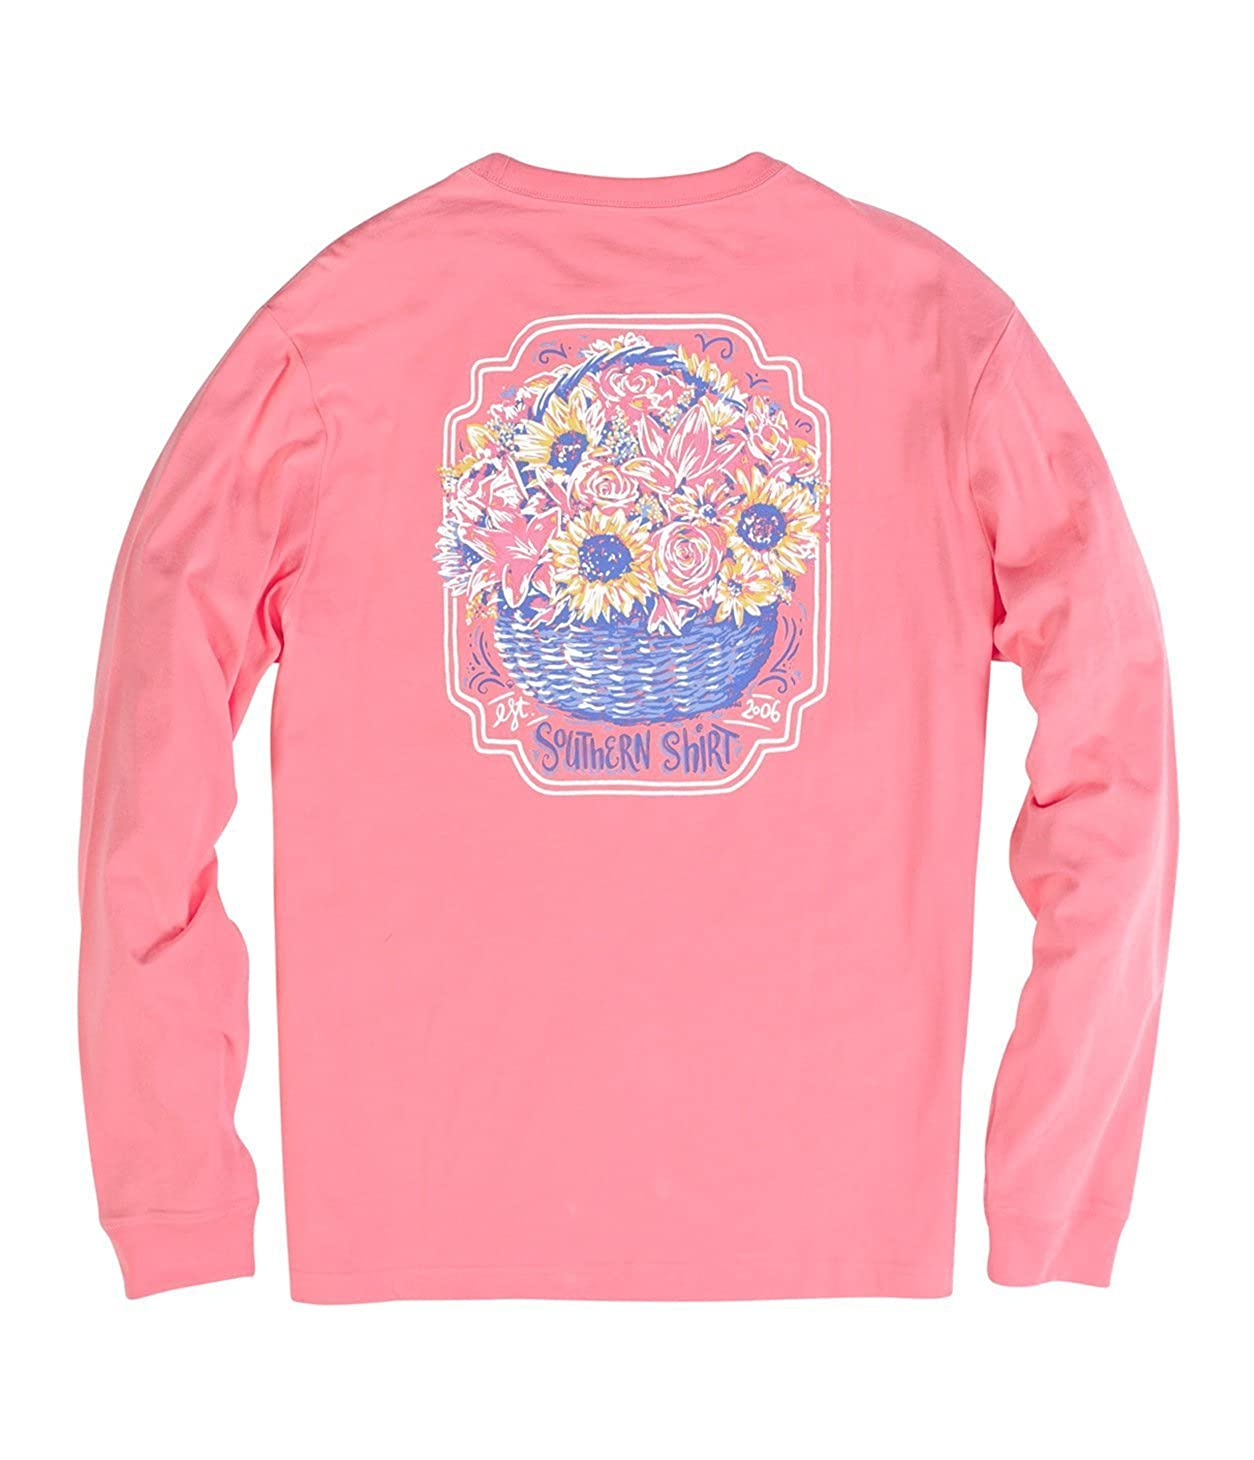 Southern Shirt Company Basket of Flowers Long Sleeve Tee